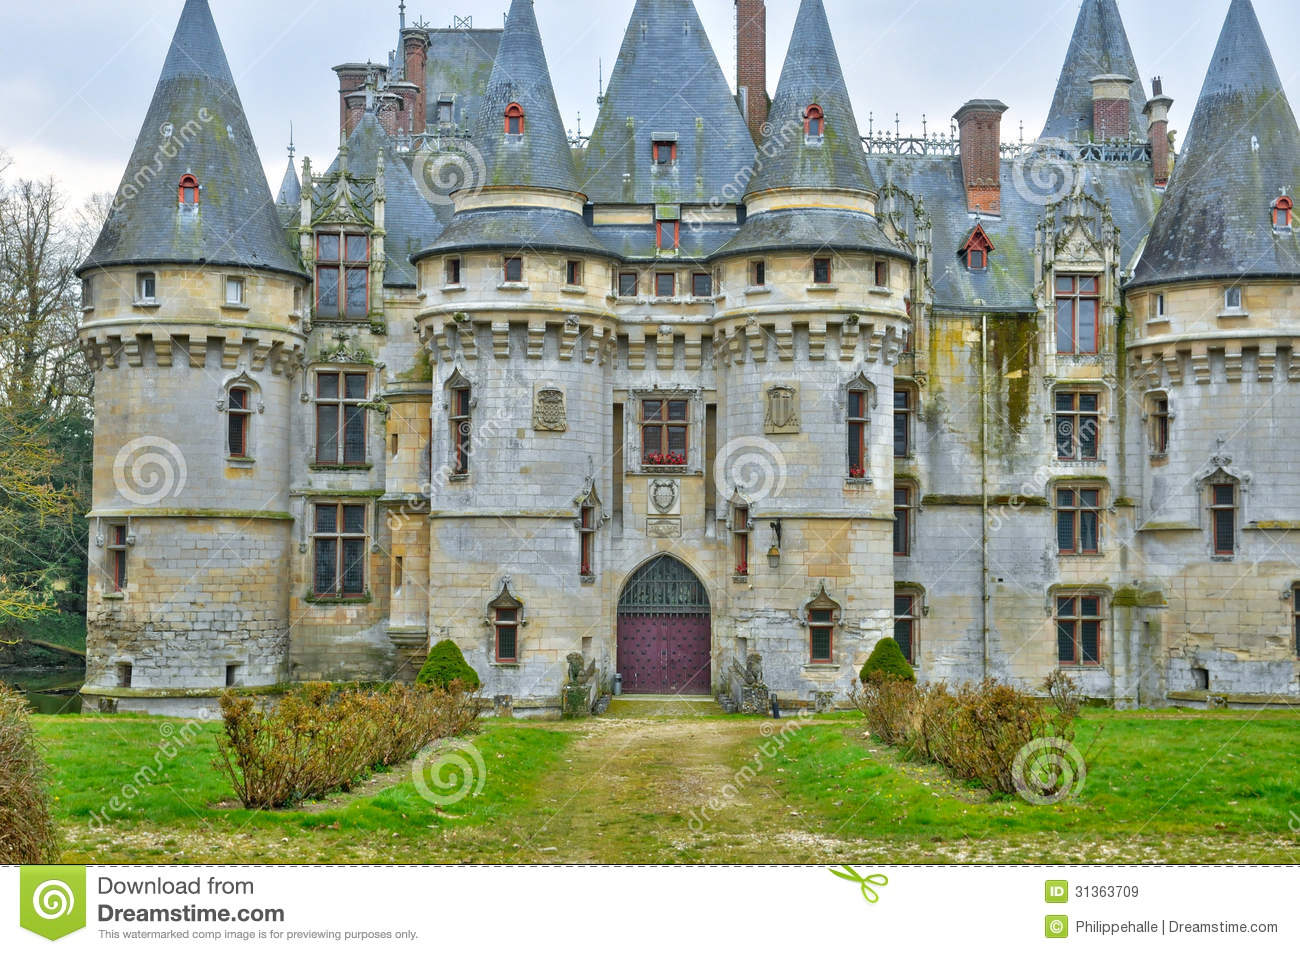 france the castle of vigny in val d oise stock image image 31363709. Black Bedroom Furniture Sets. Home Design Ideas